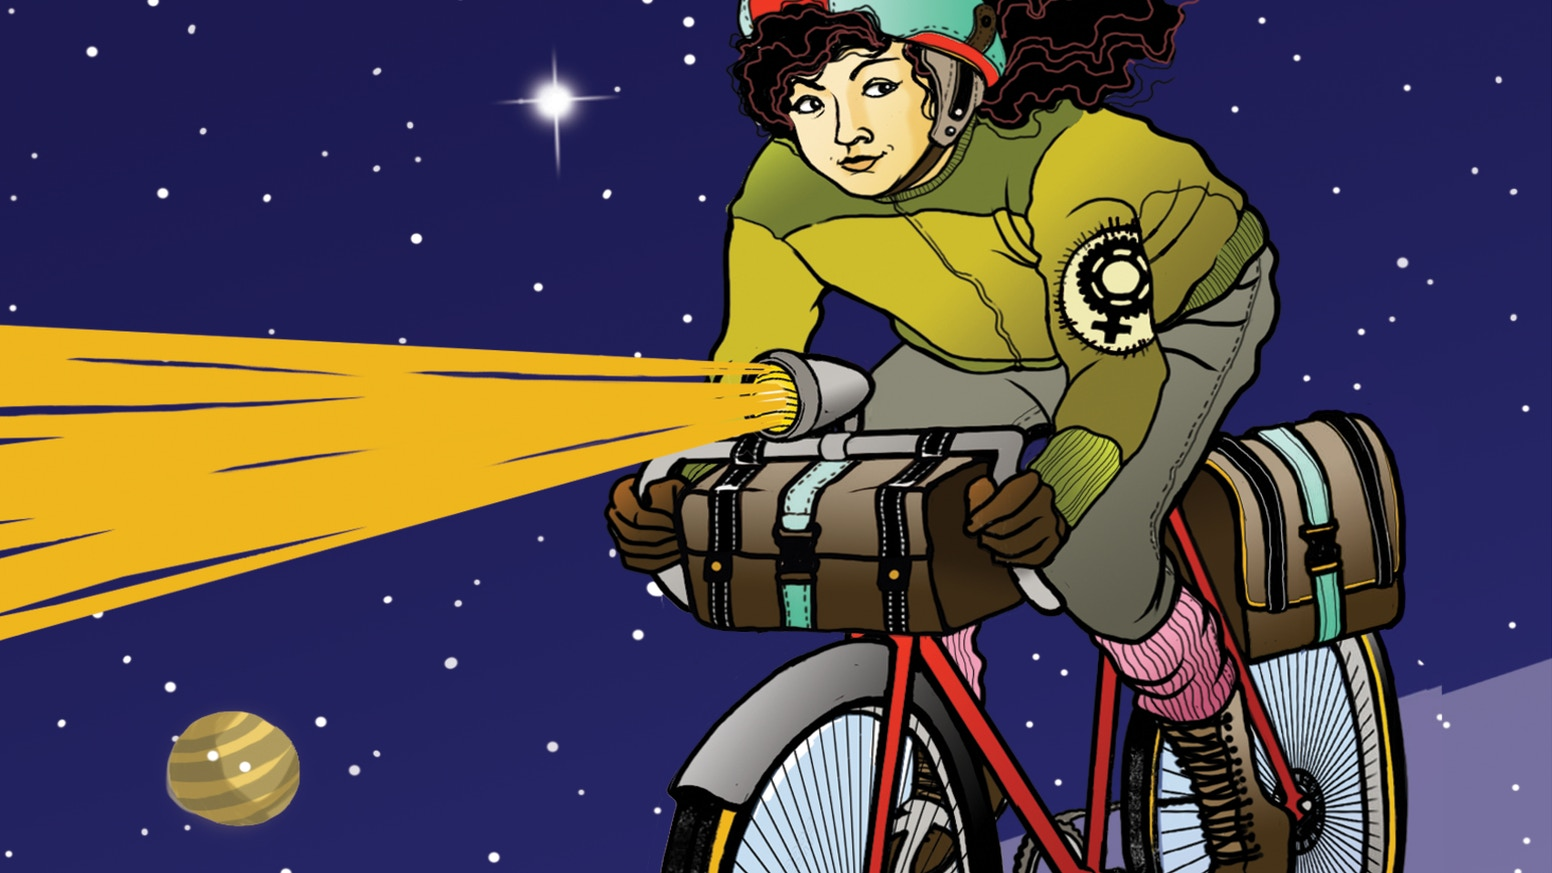 Diverse stories exploring pedal-powered visions of humanity's race to the stars... or just to survive.